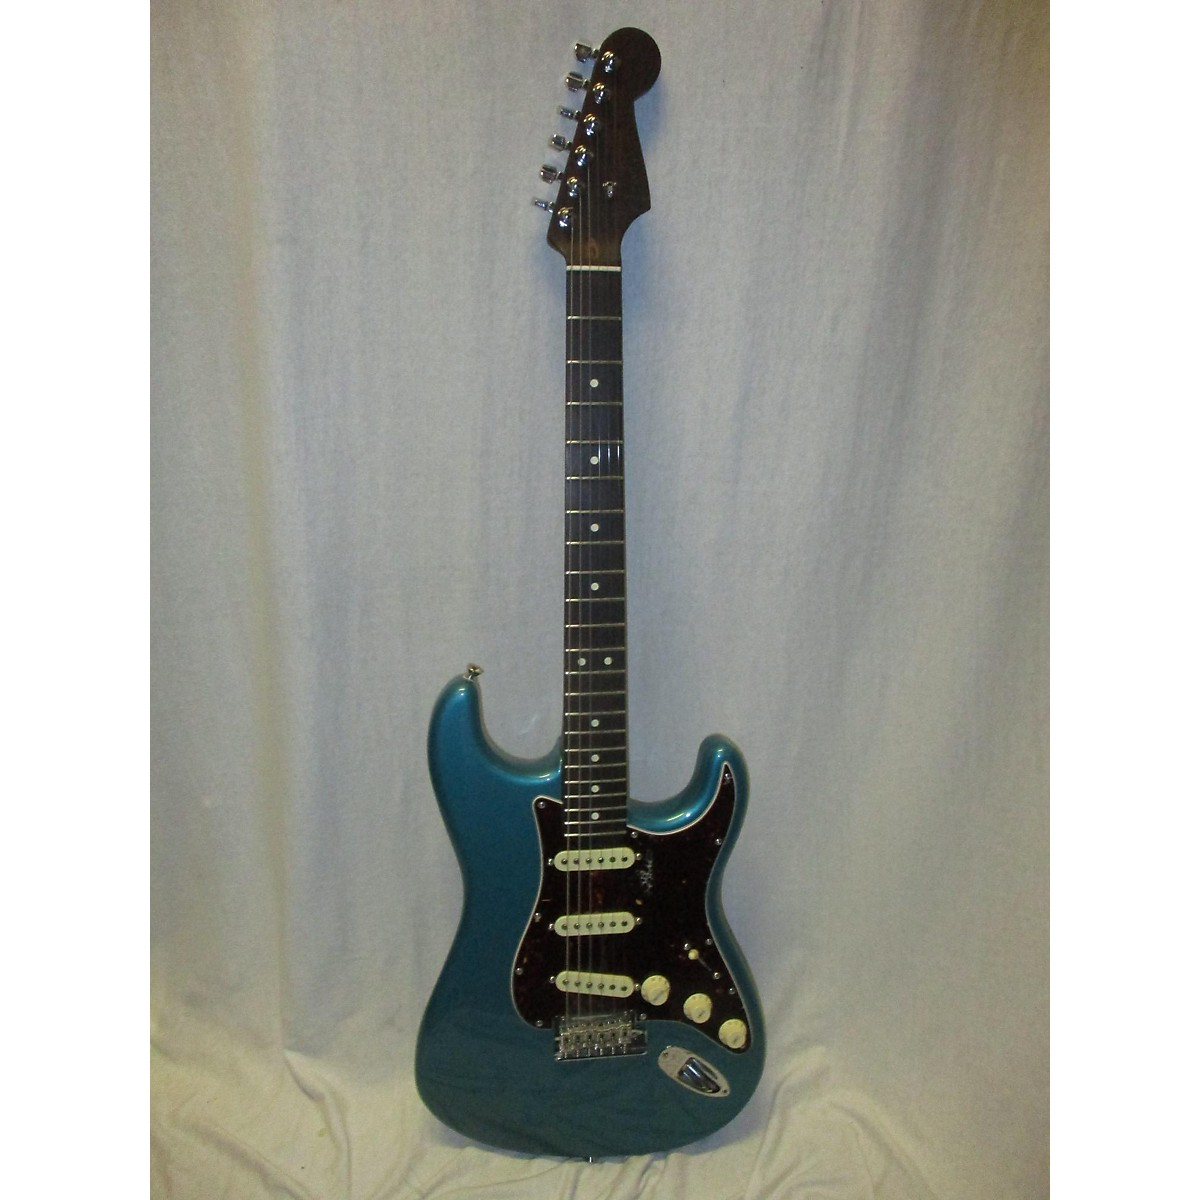 Fender American Professional Stratocaster Rosewood Neck Limited Edition Solid Body Electric Guitar